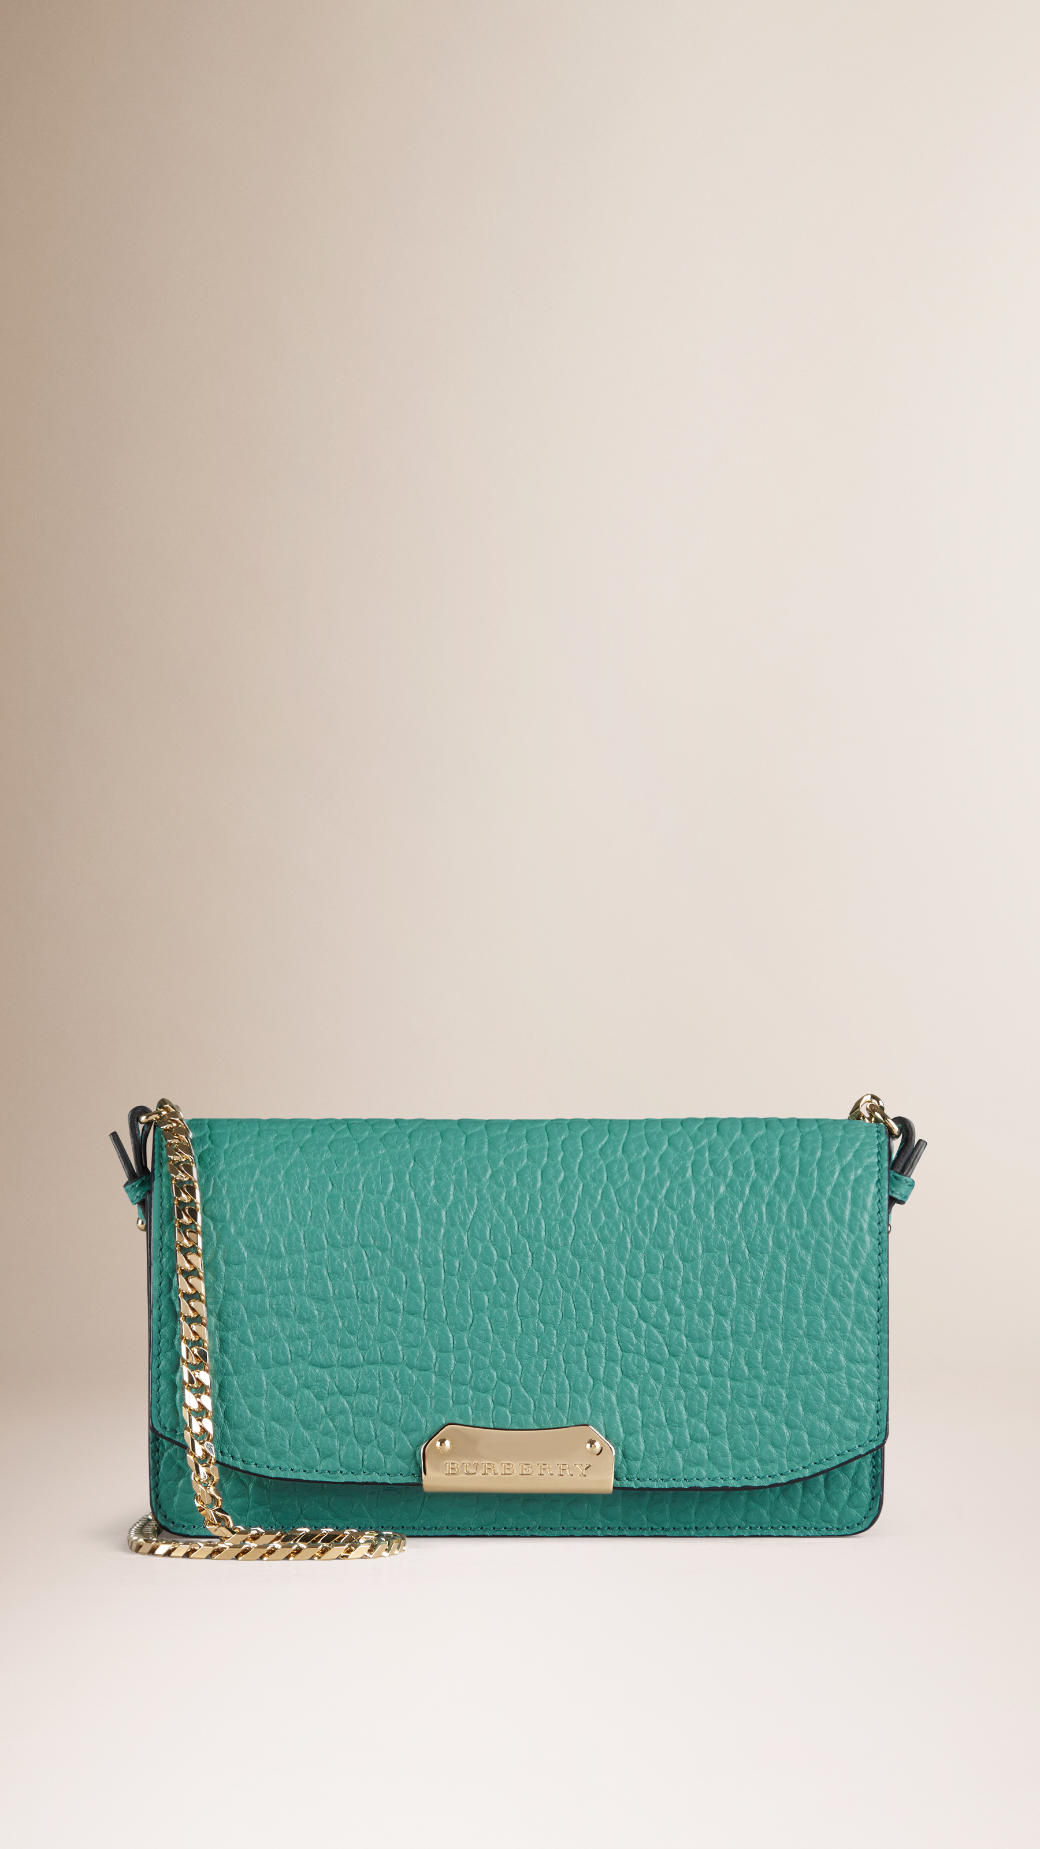 iv sen loren bags - Burberry Small Signature Grain Leather Clutch Bag With Chain in ...